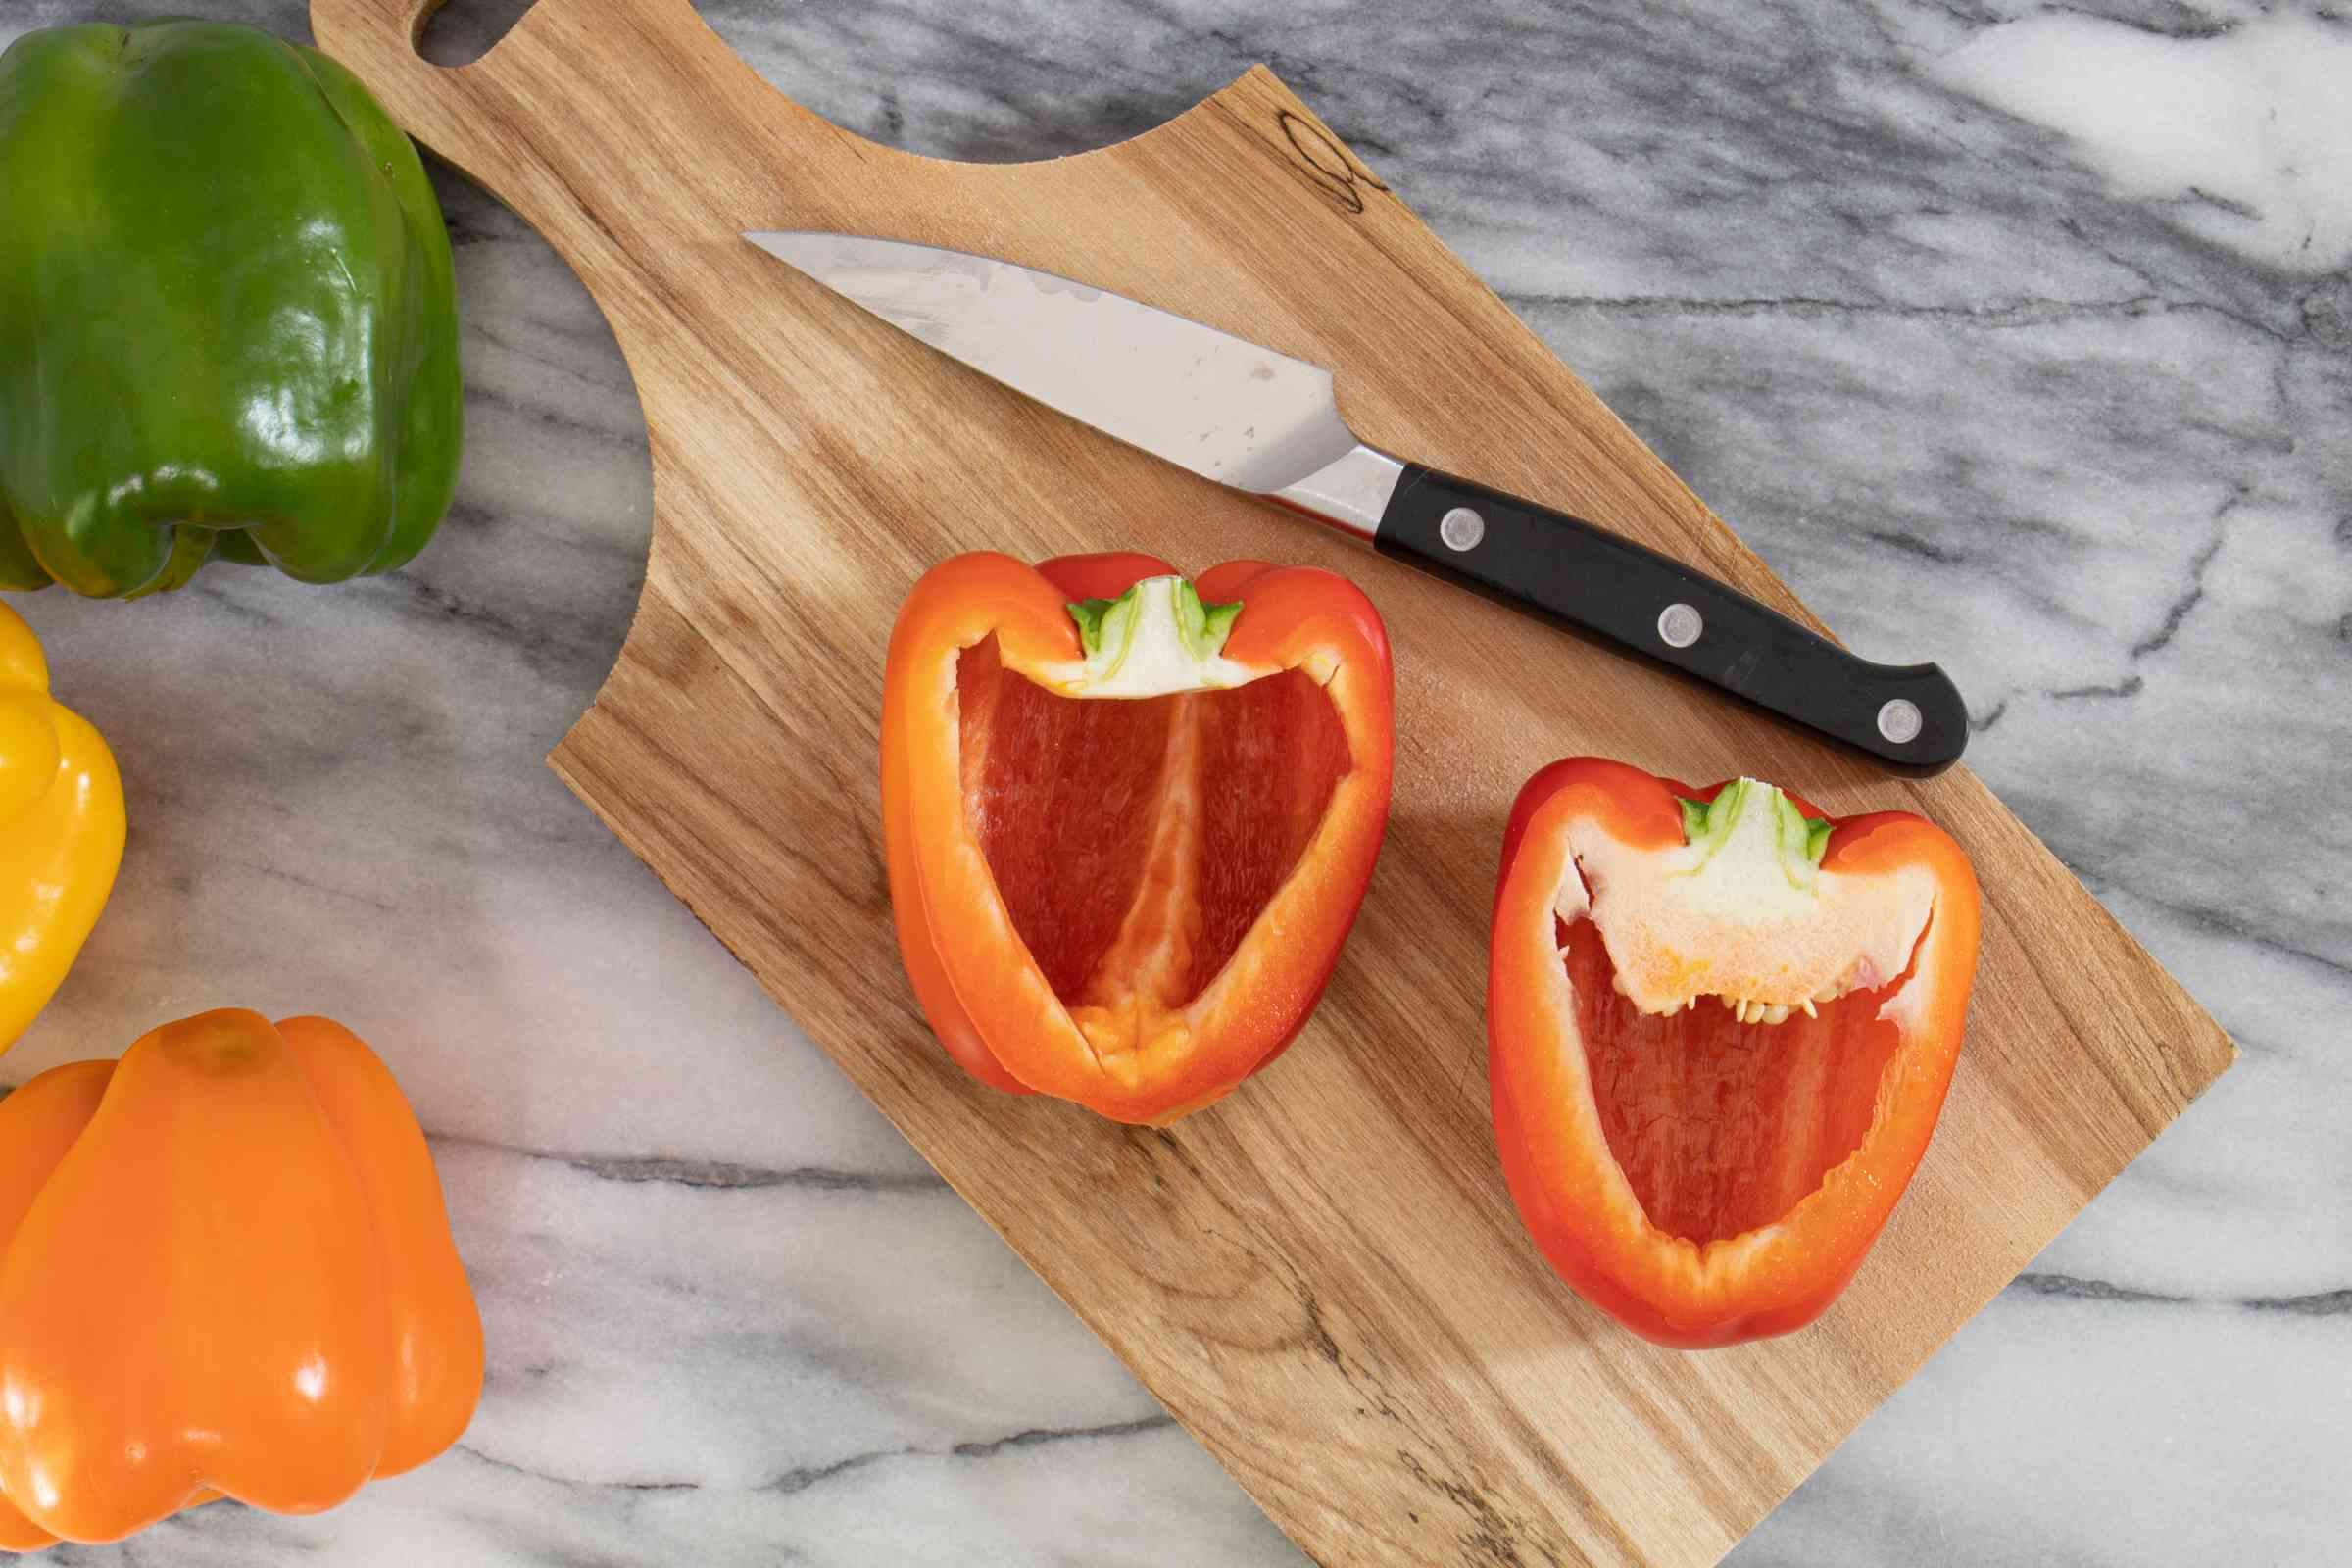 slice the peppers and remove the seeds